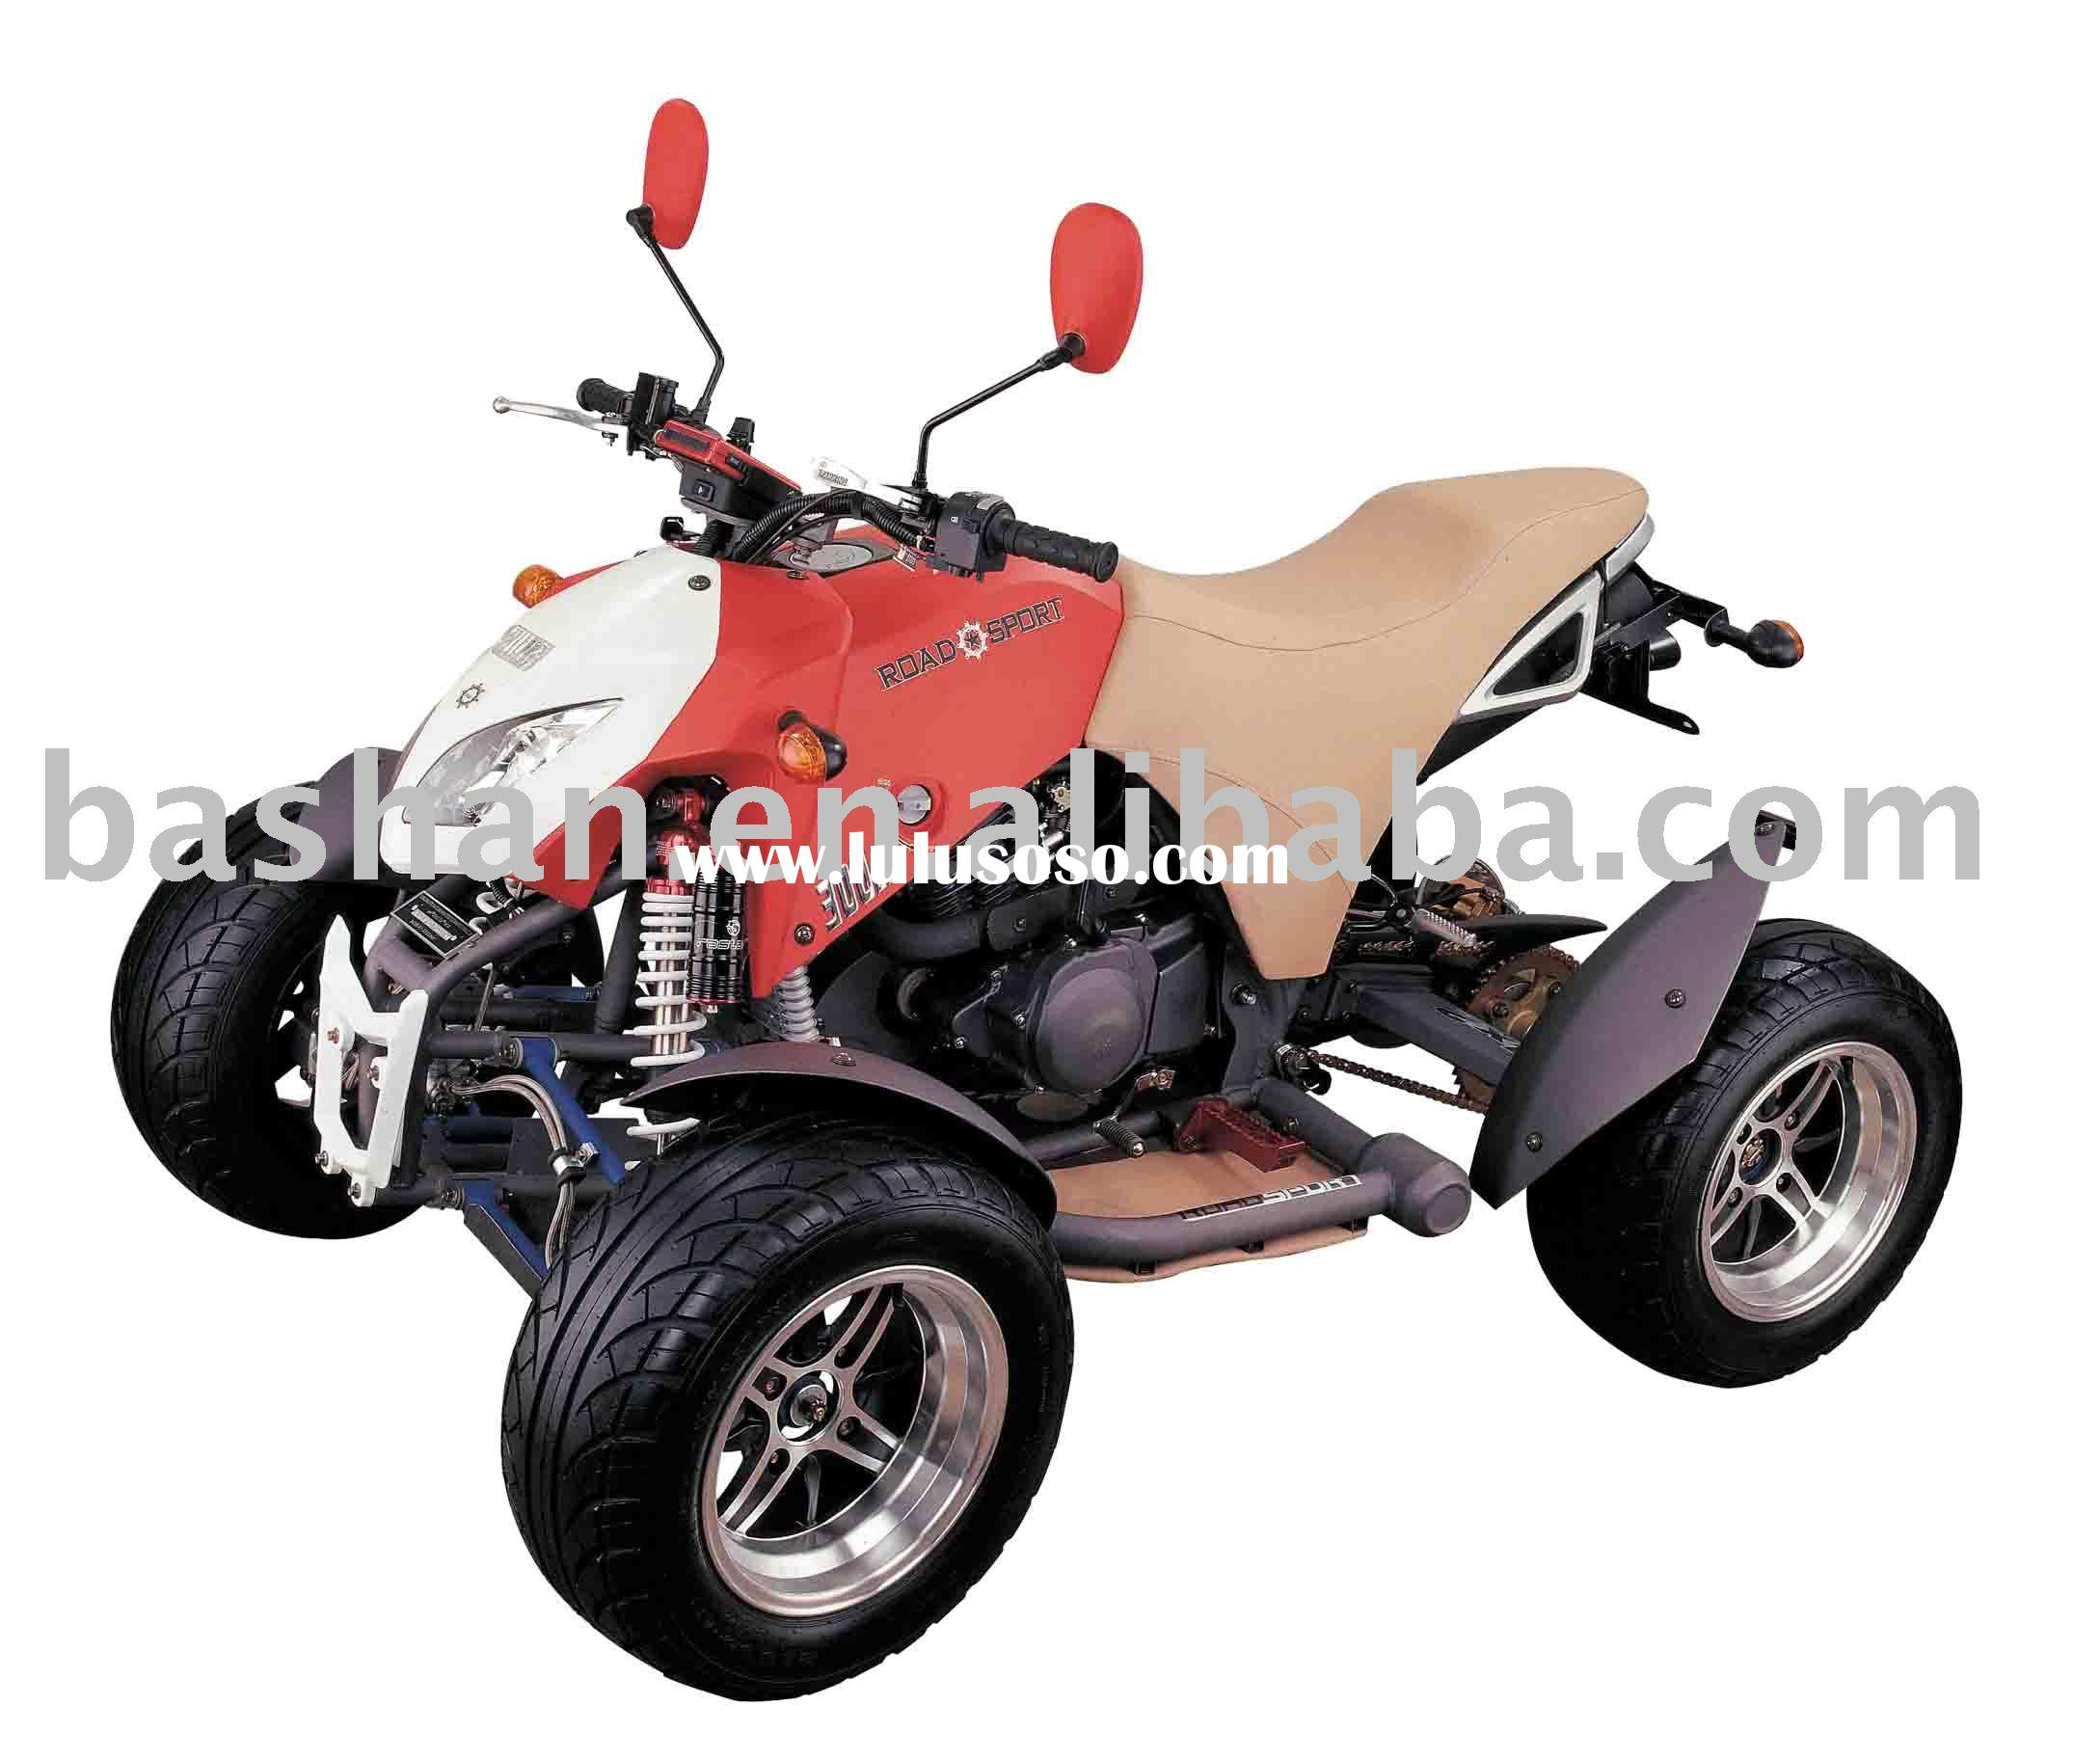 2011 new 300cc mini atv 4x4 with reverse gear